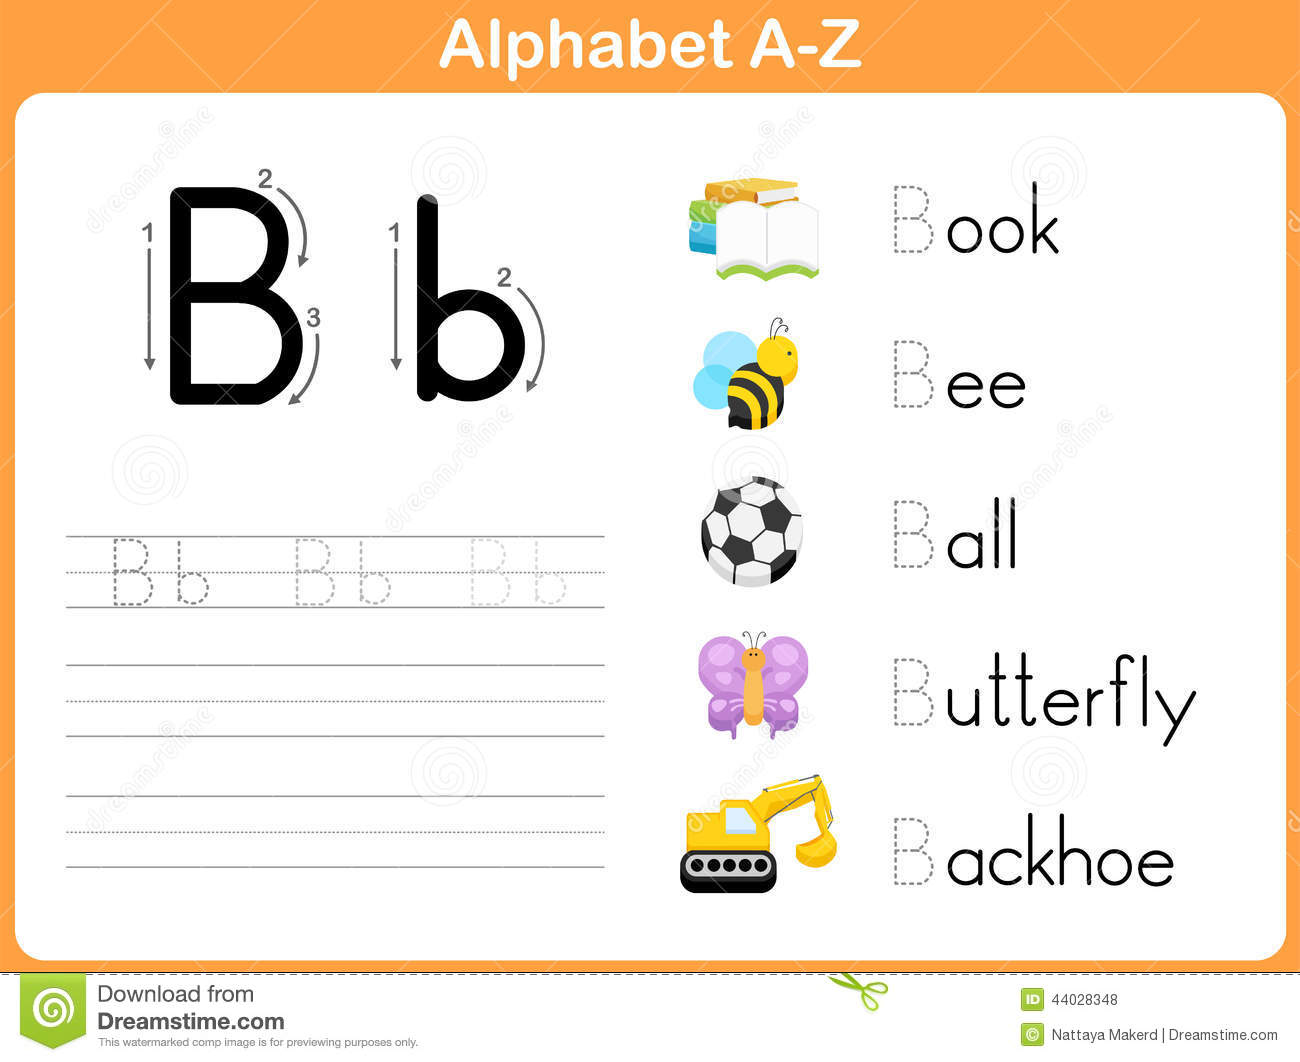 Workbooks traceable alphabet worksheets a-z : Worksheets. Alphabet Tracing A Z. Opossumsoft Worksheets and ...